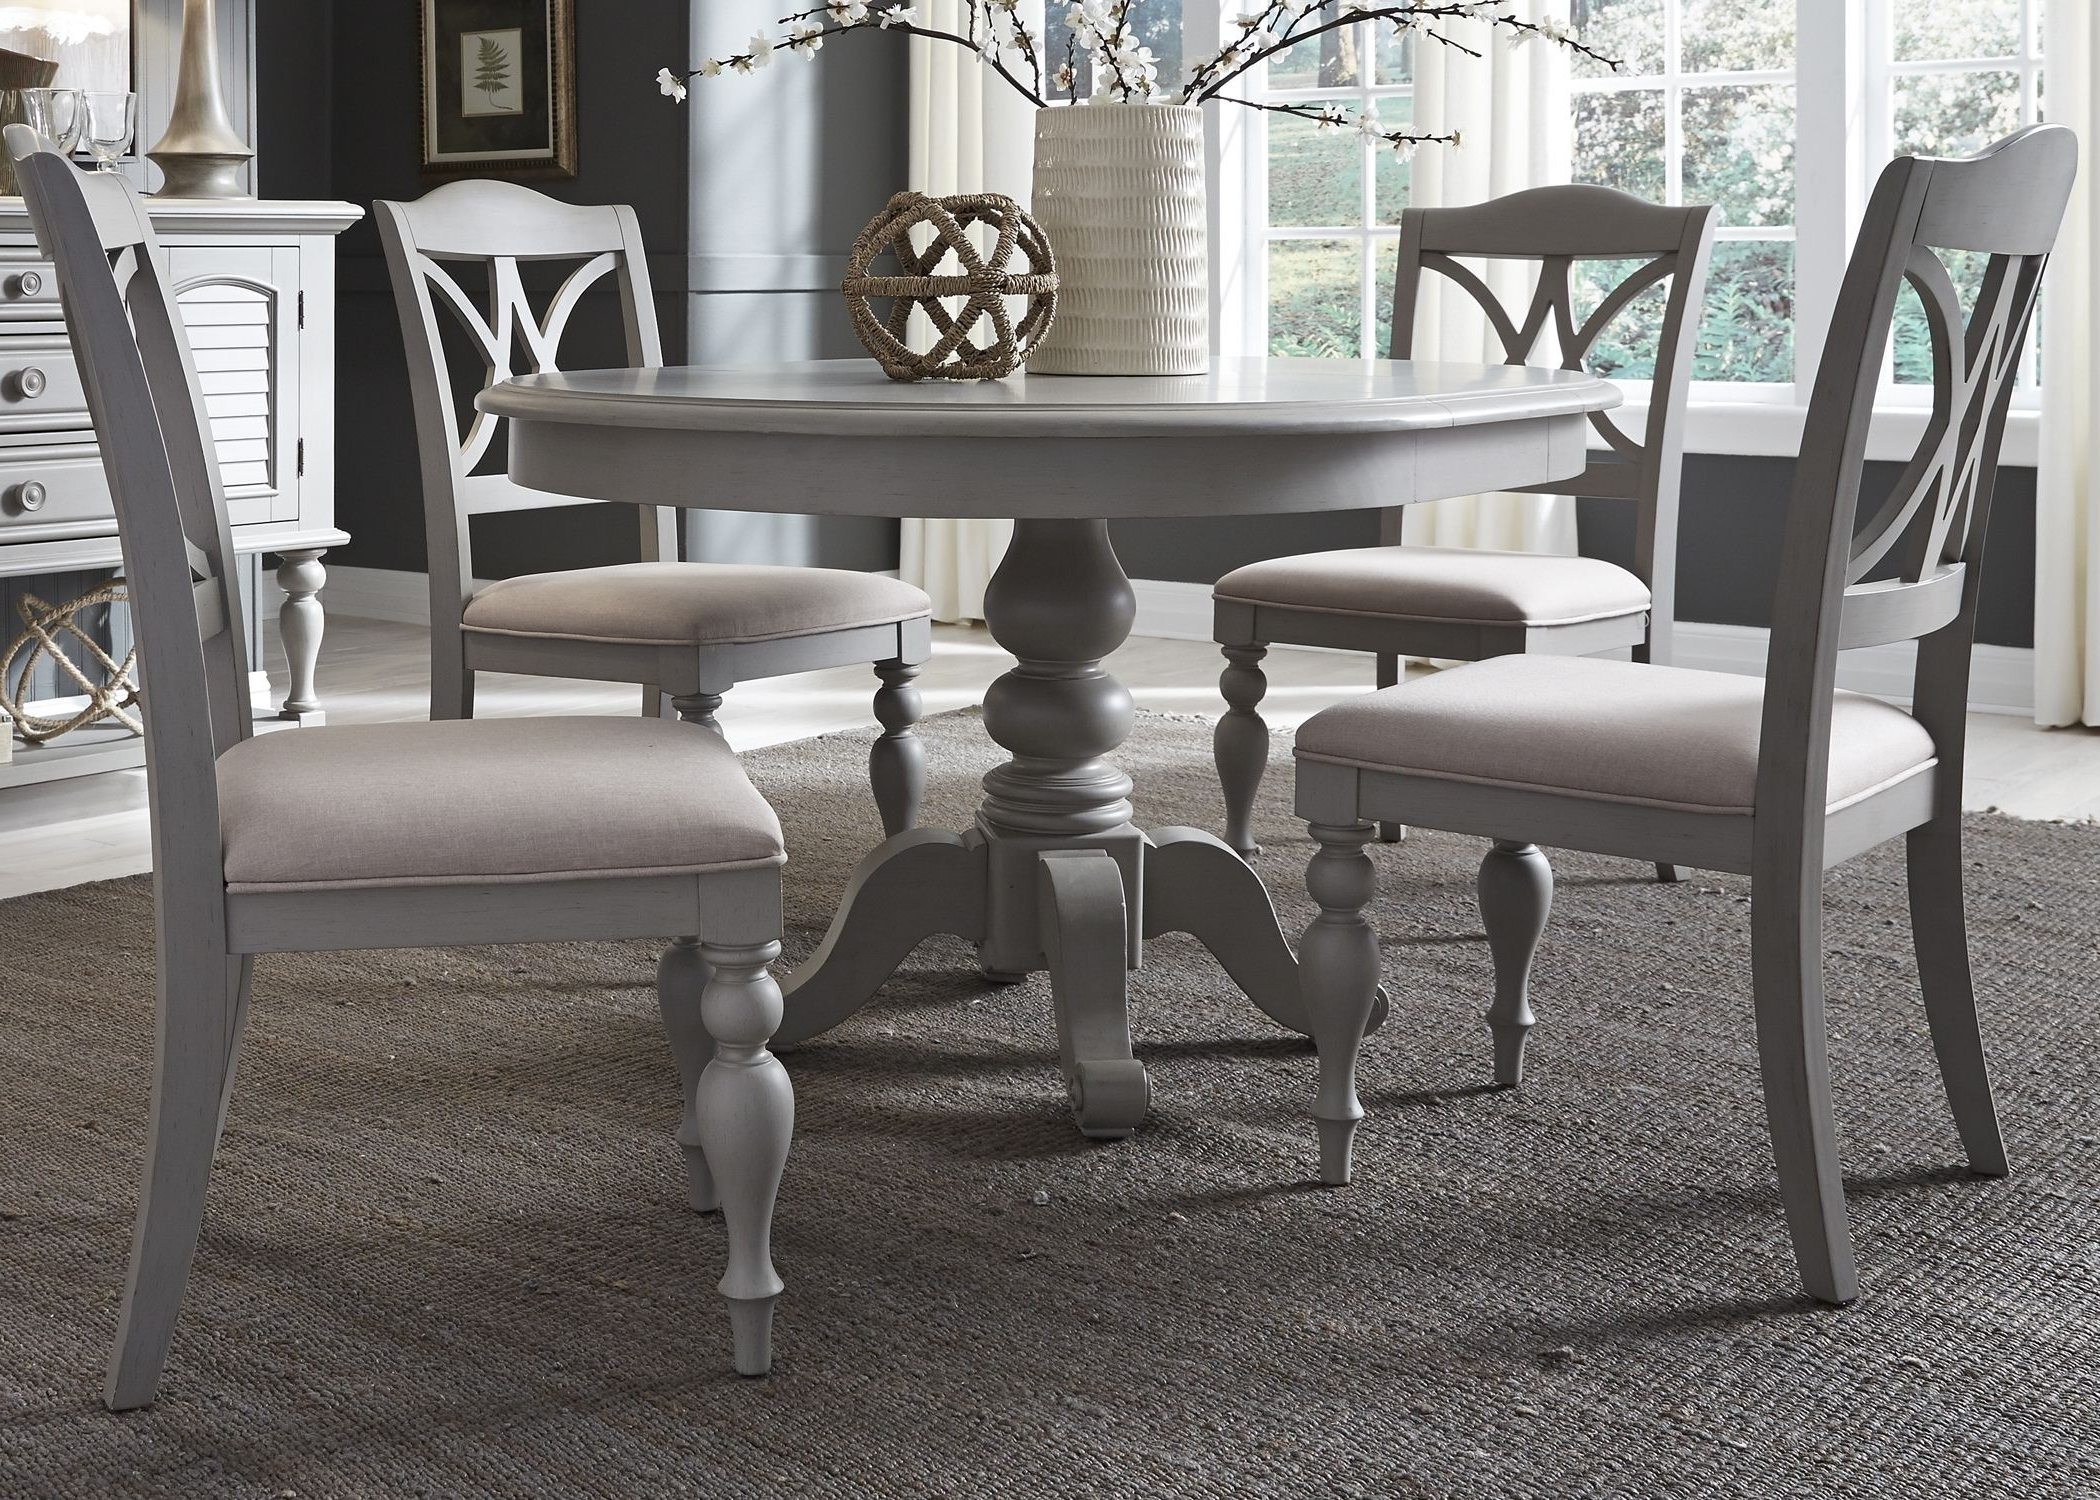 Famous White Round Extendable Dining Tables Inside Liberty Summer House Dove Grey Round Extendable Dining Table (View 5 of 25)